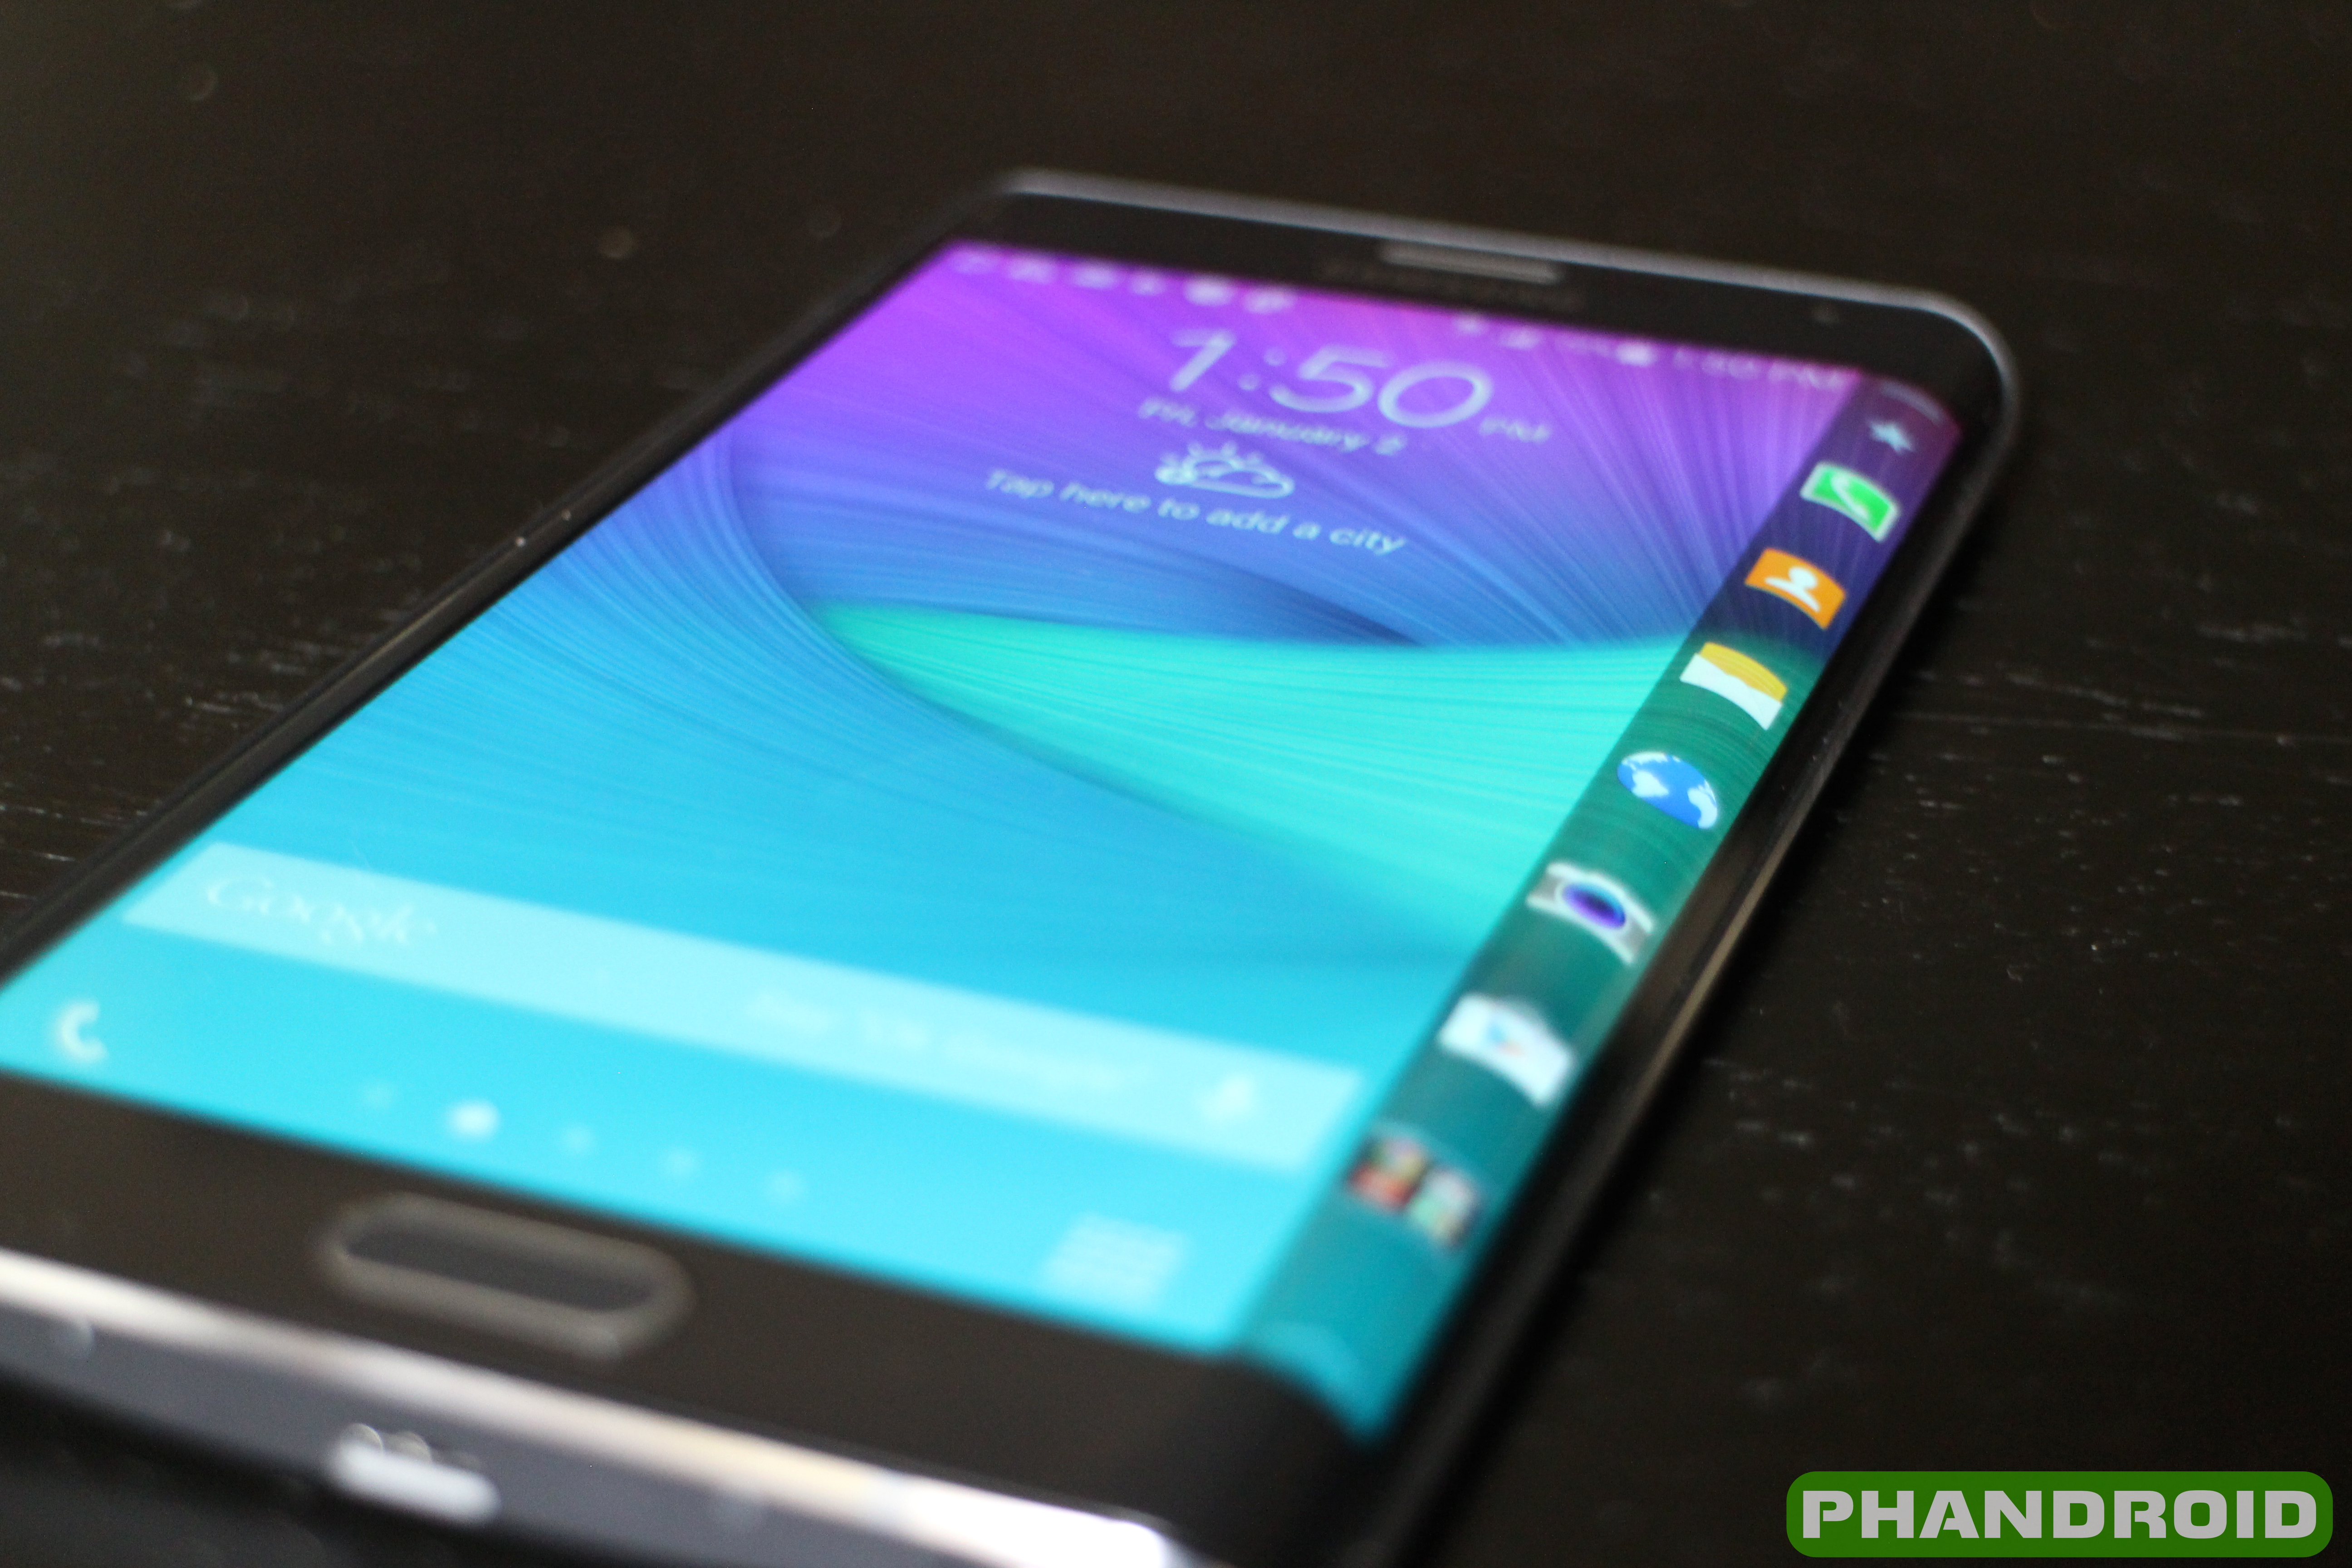 Phone Best Android Phones For Verizon galaxy note 7 alternatives best android phones with a stylus for all of the good things samsung 5 has there are couple that people deem unforgivable biggest complaint from tha